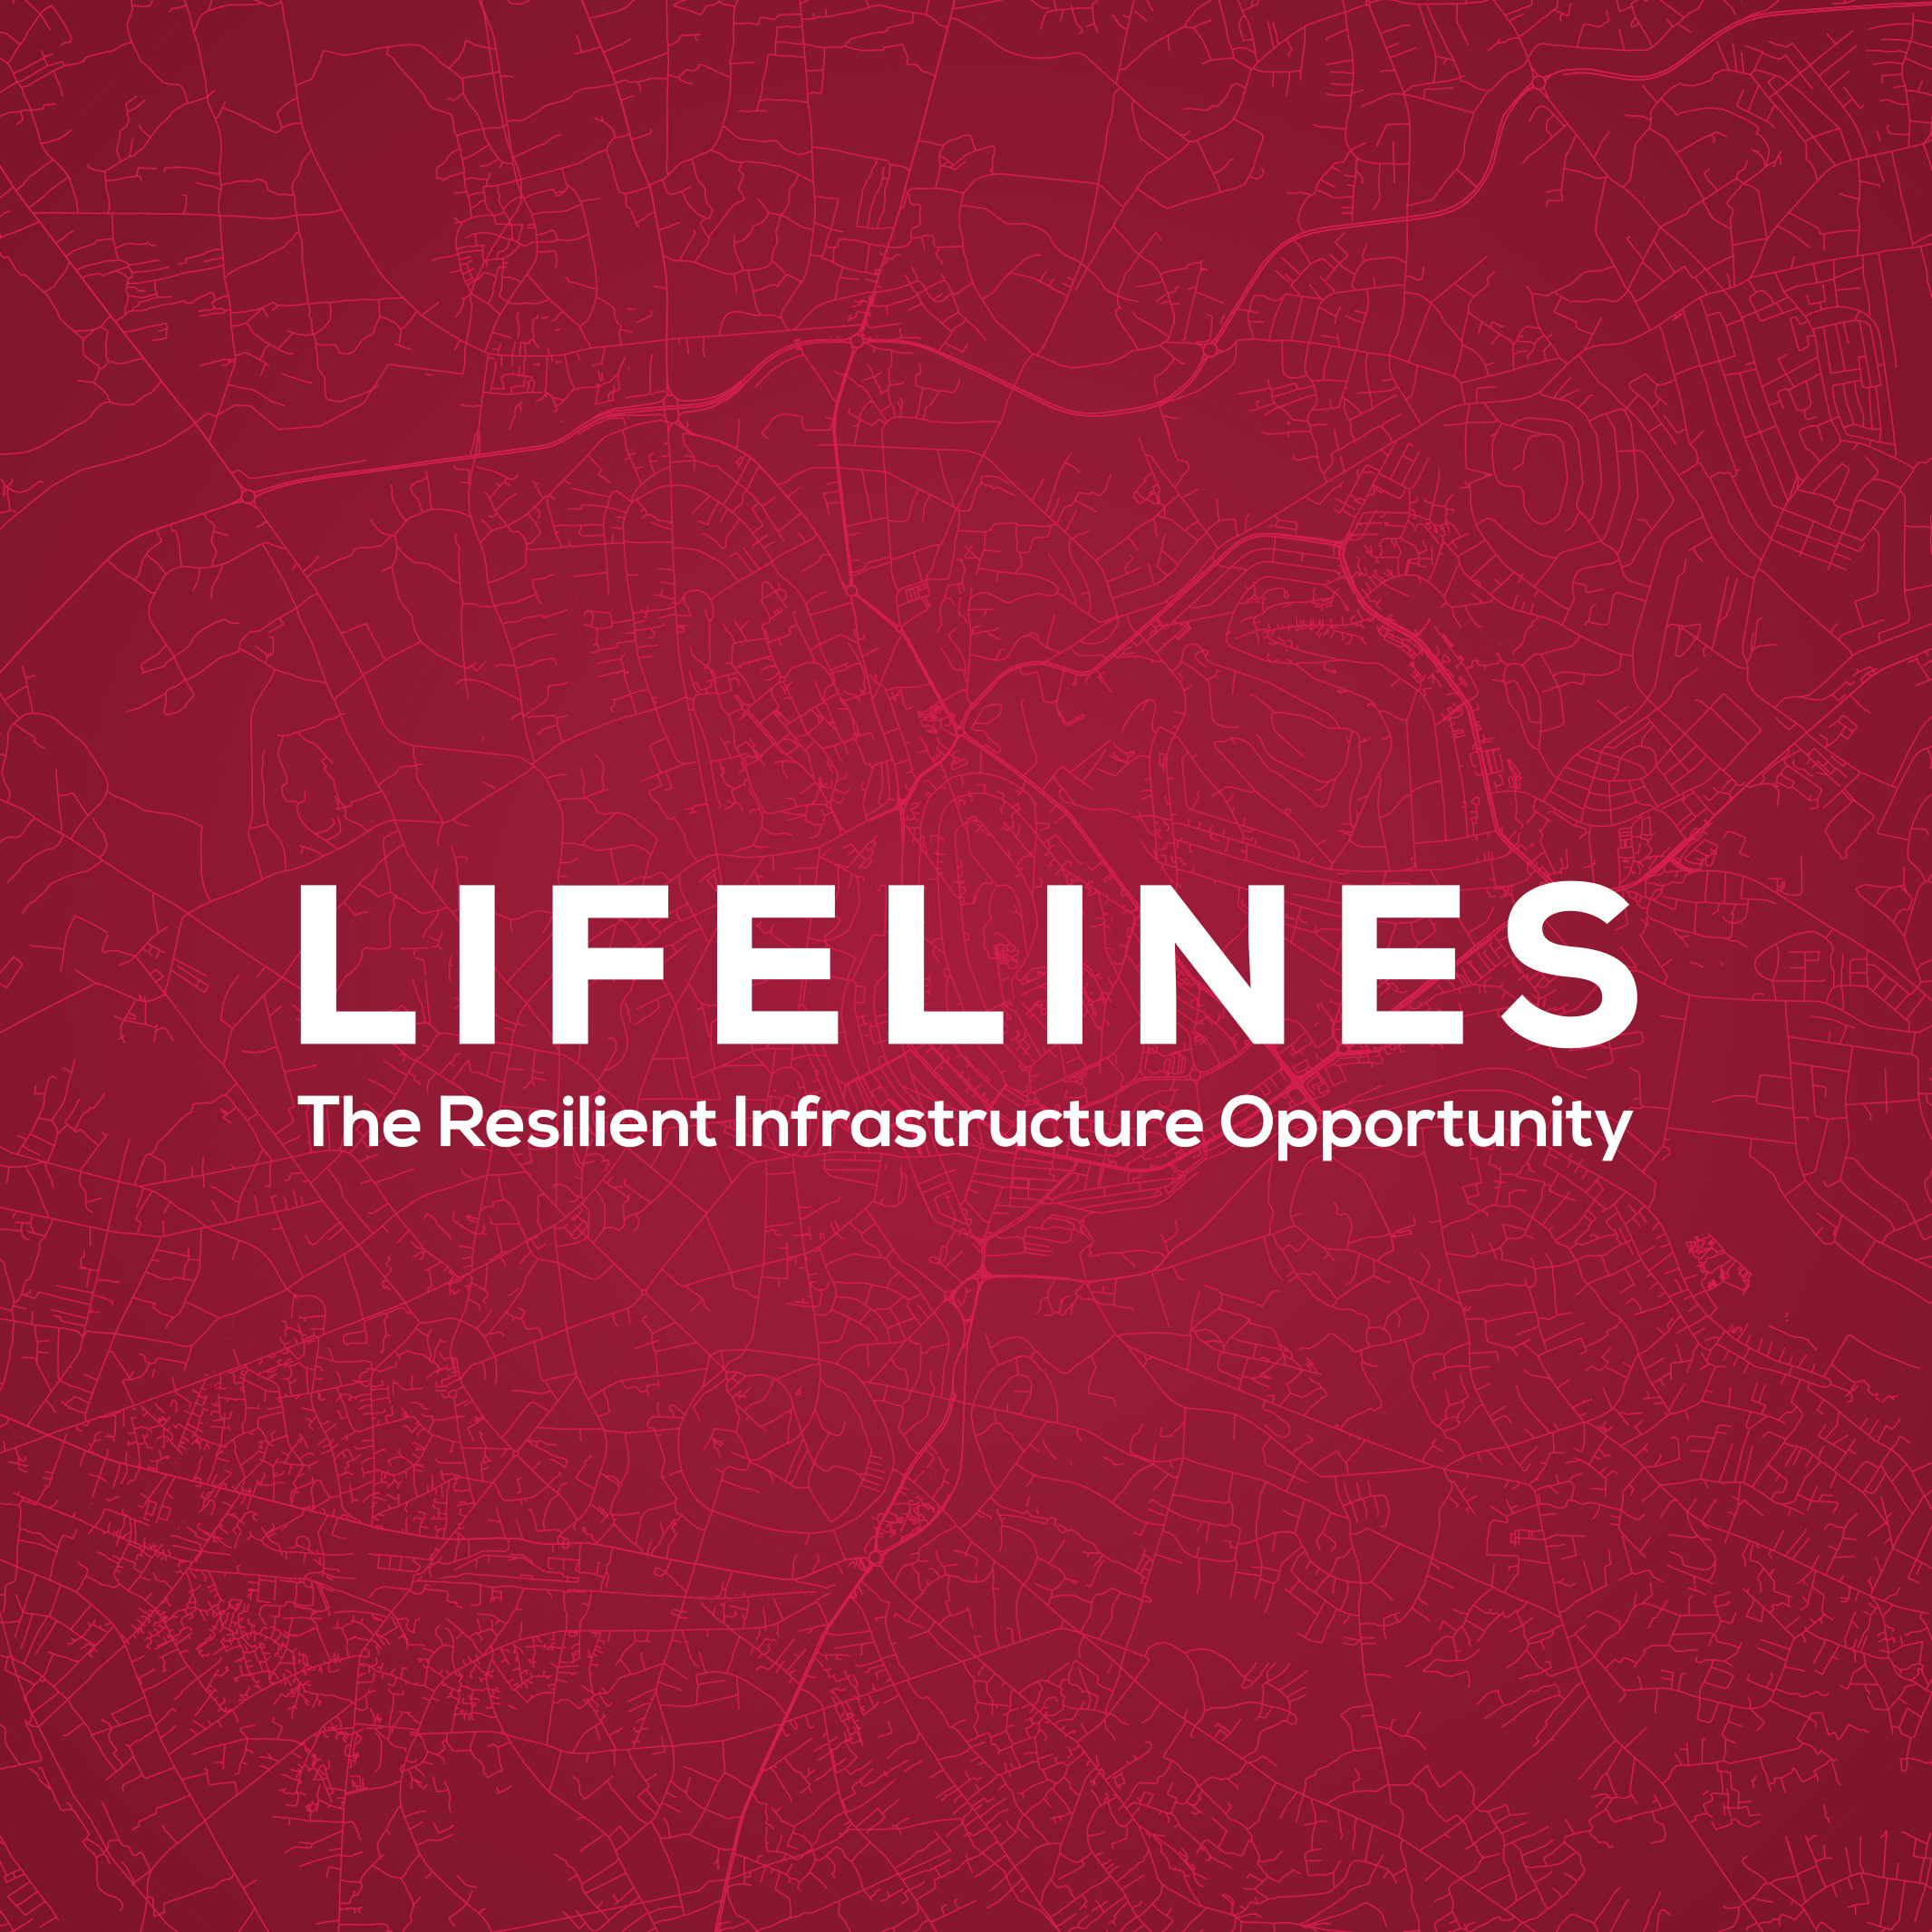 Lifelines: The Resilient Infrastructure Opportunity